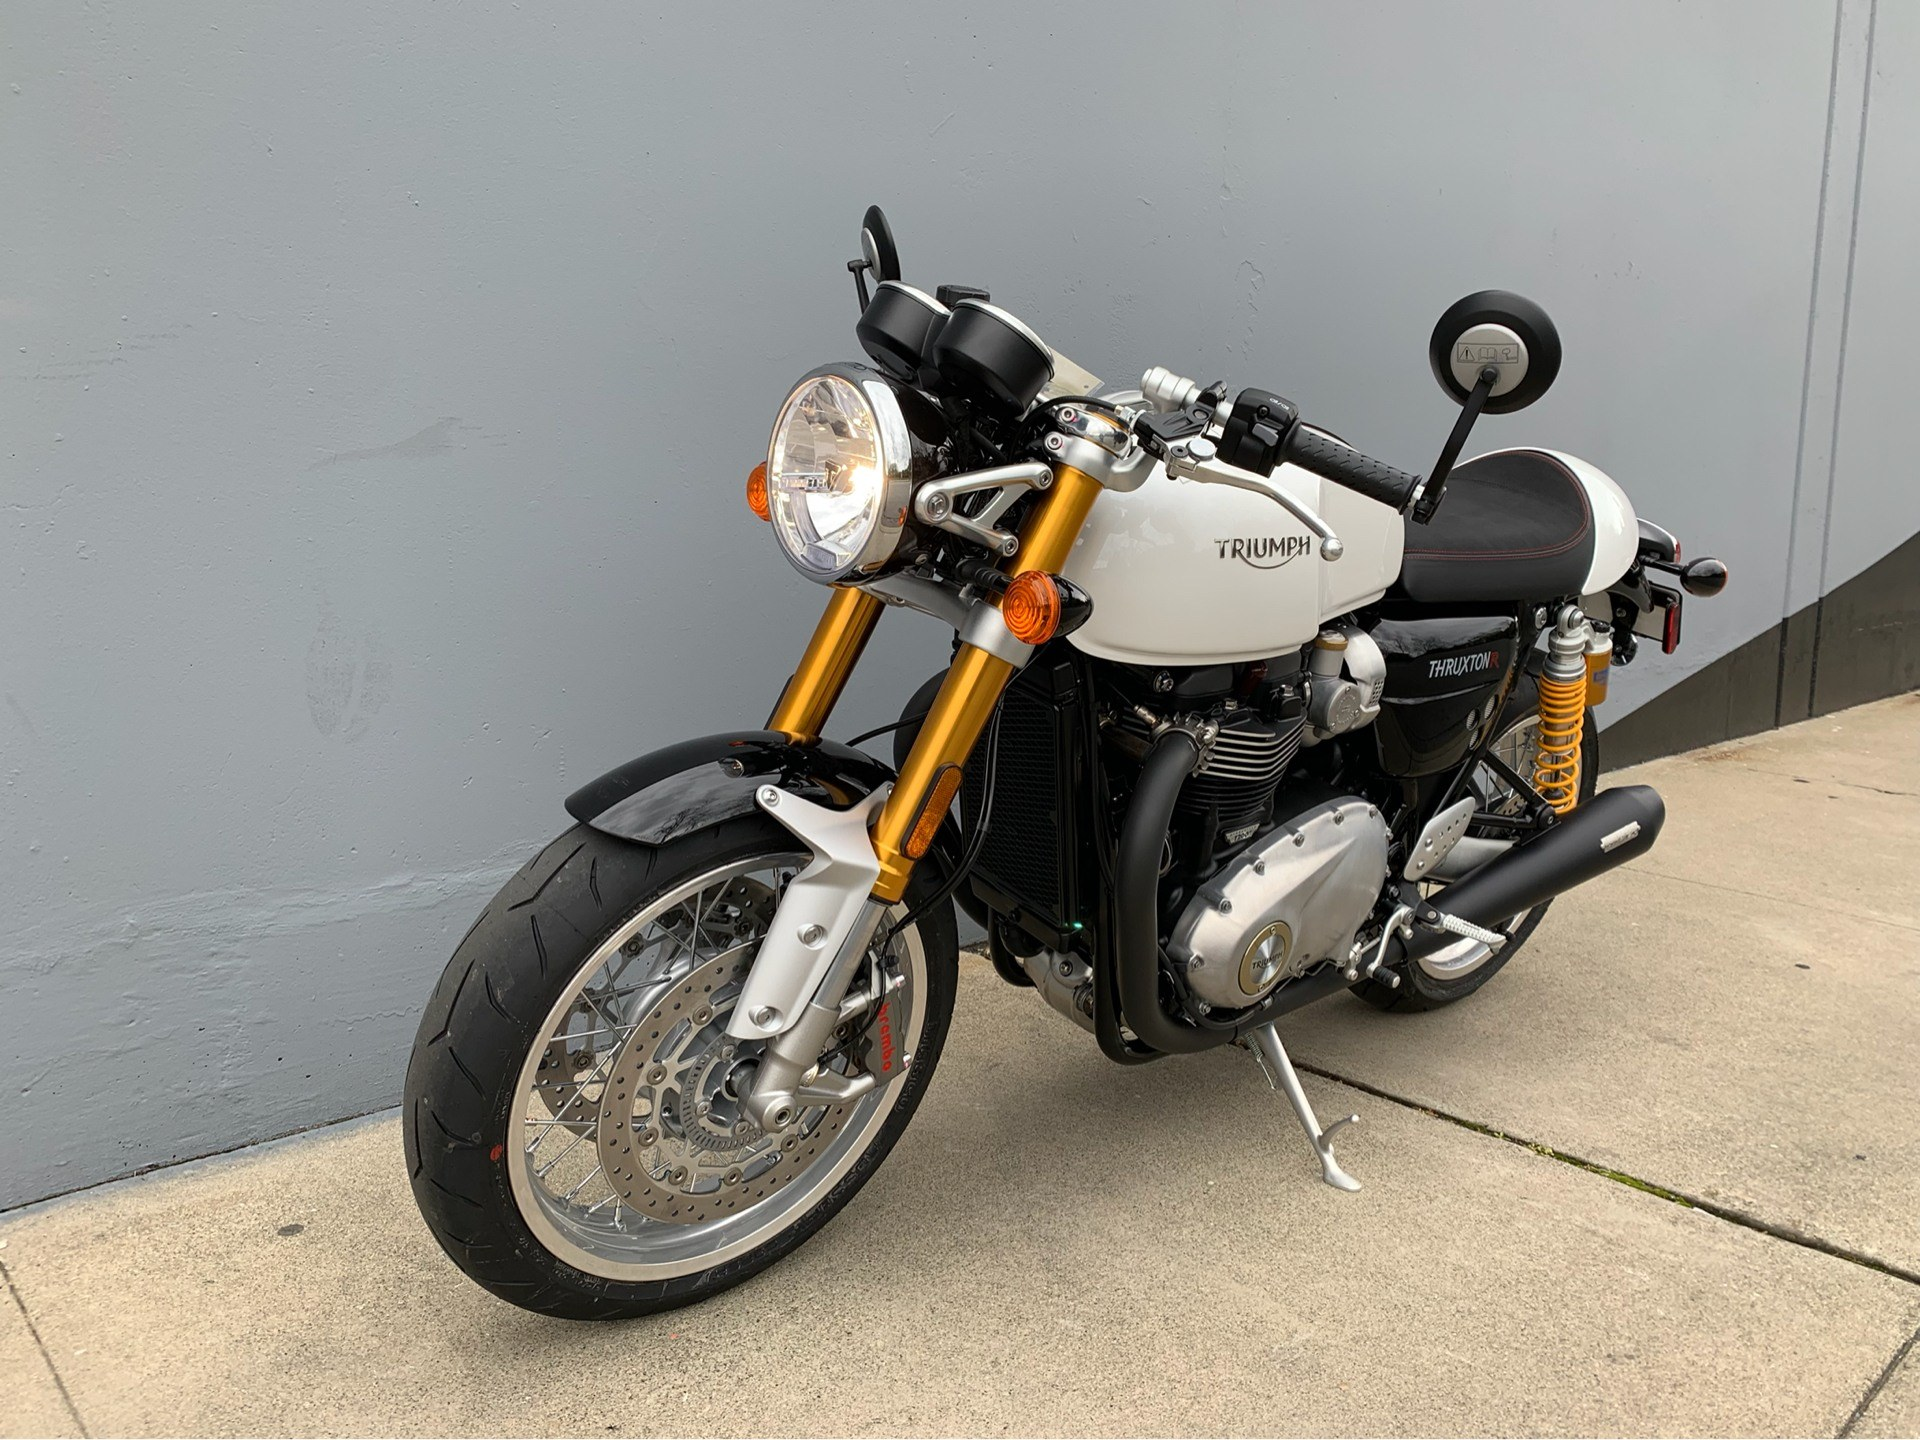 2019 Triumph Thruxton 1200 R in San Jose, California - Photo 3